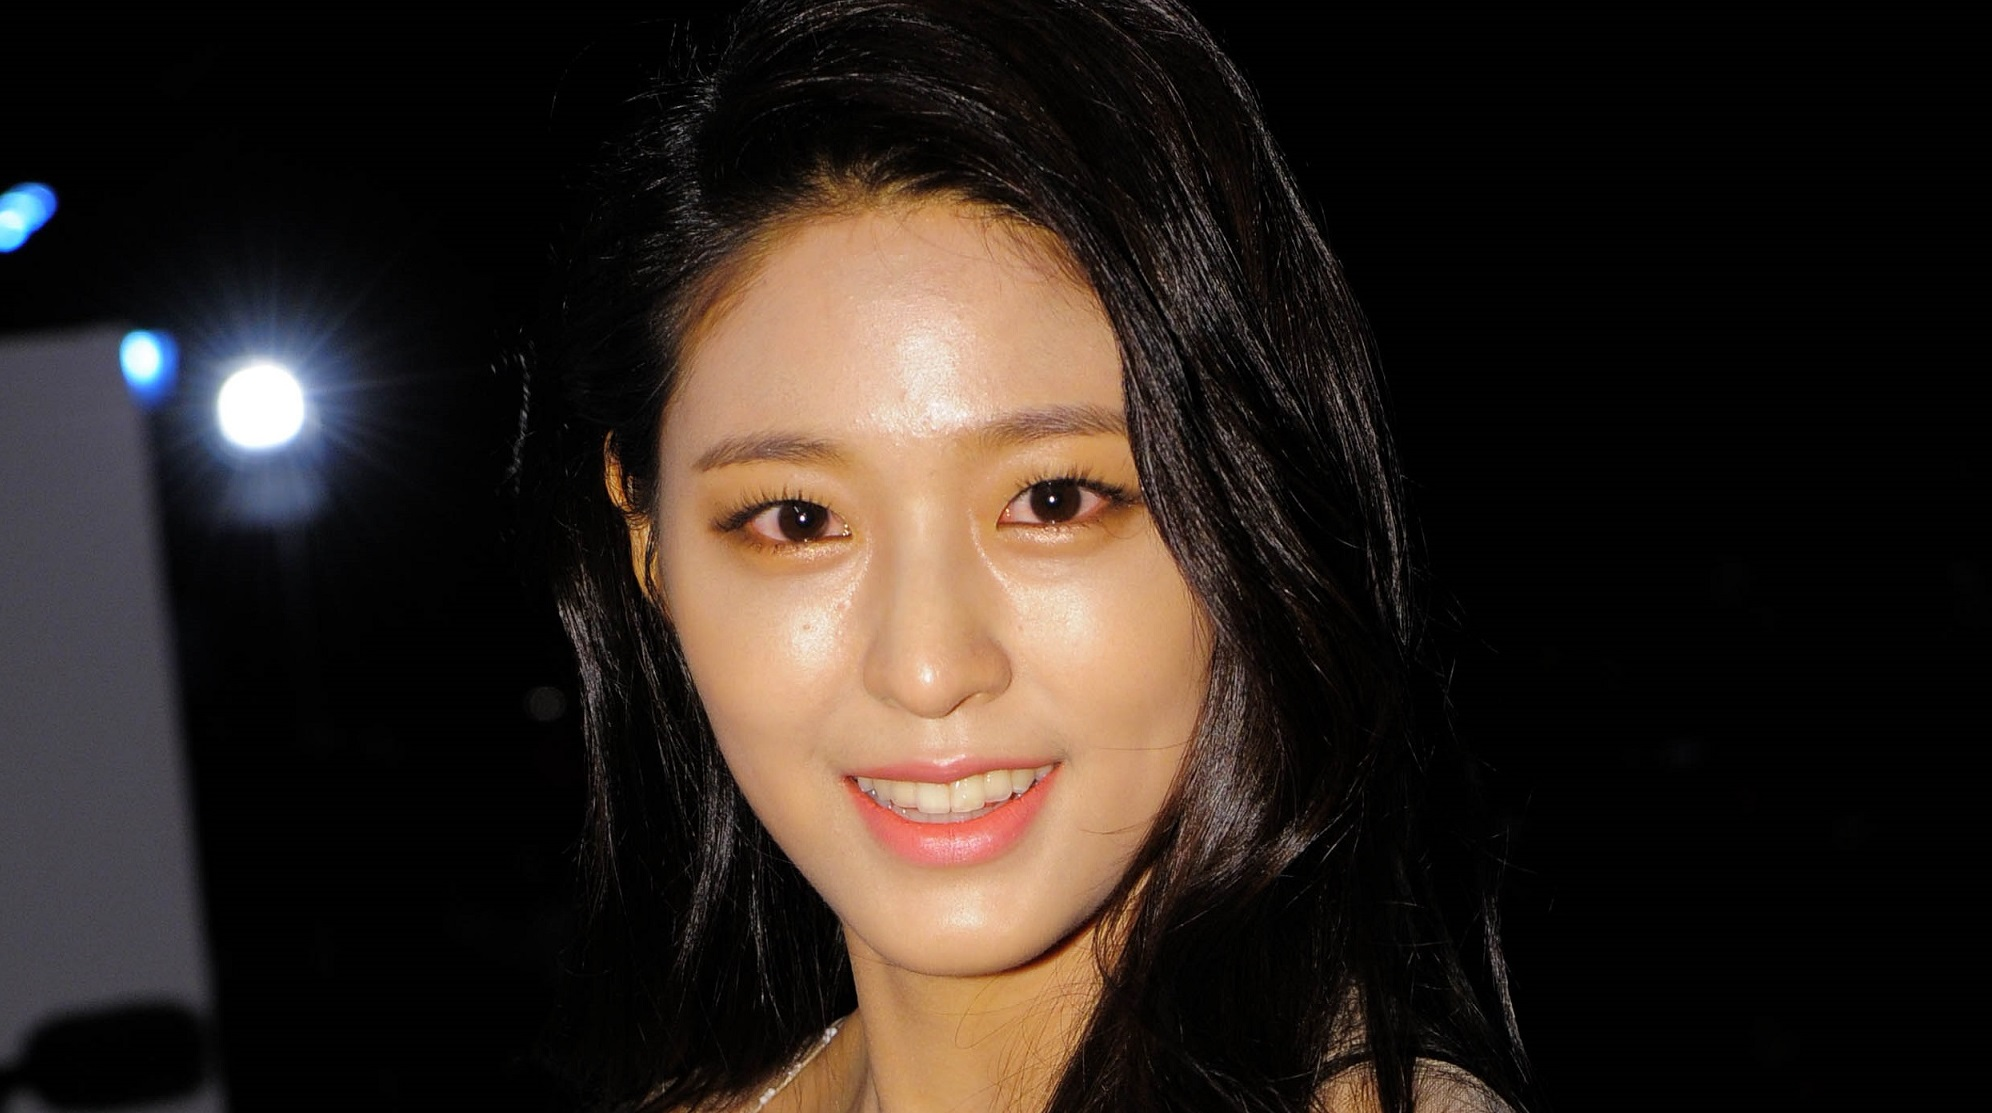 Aoa S Seolhyun Speaks Out About Her Pale Makeup